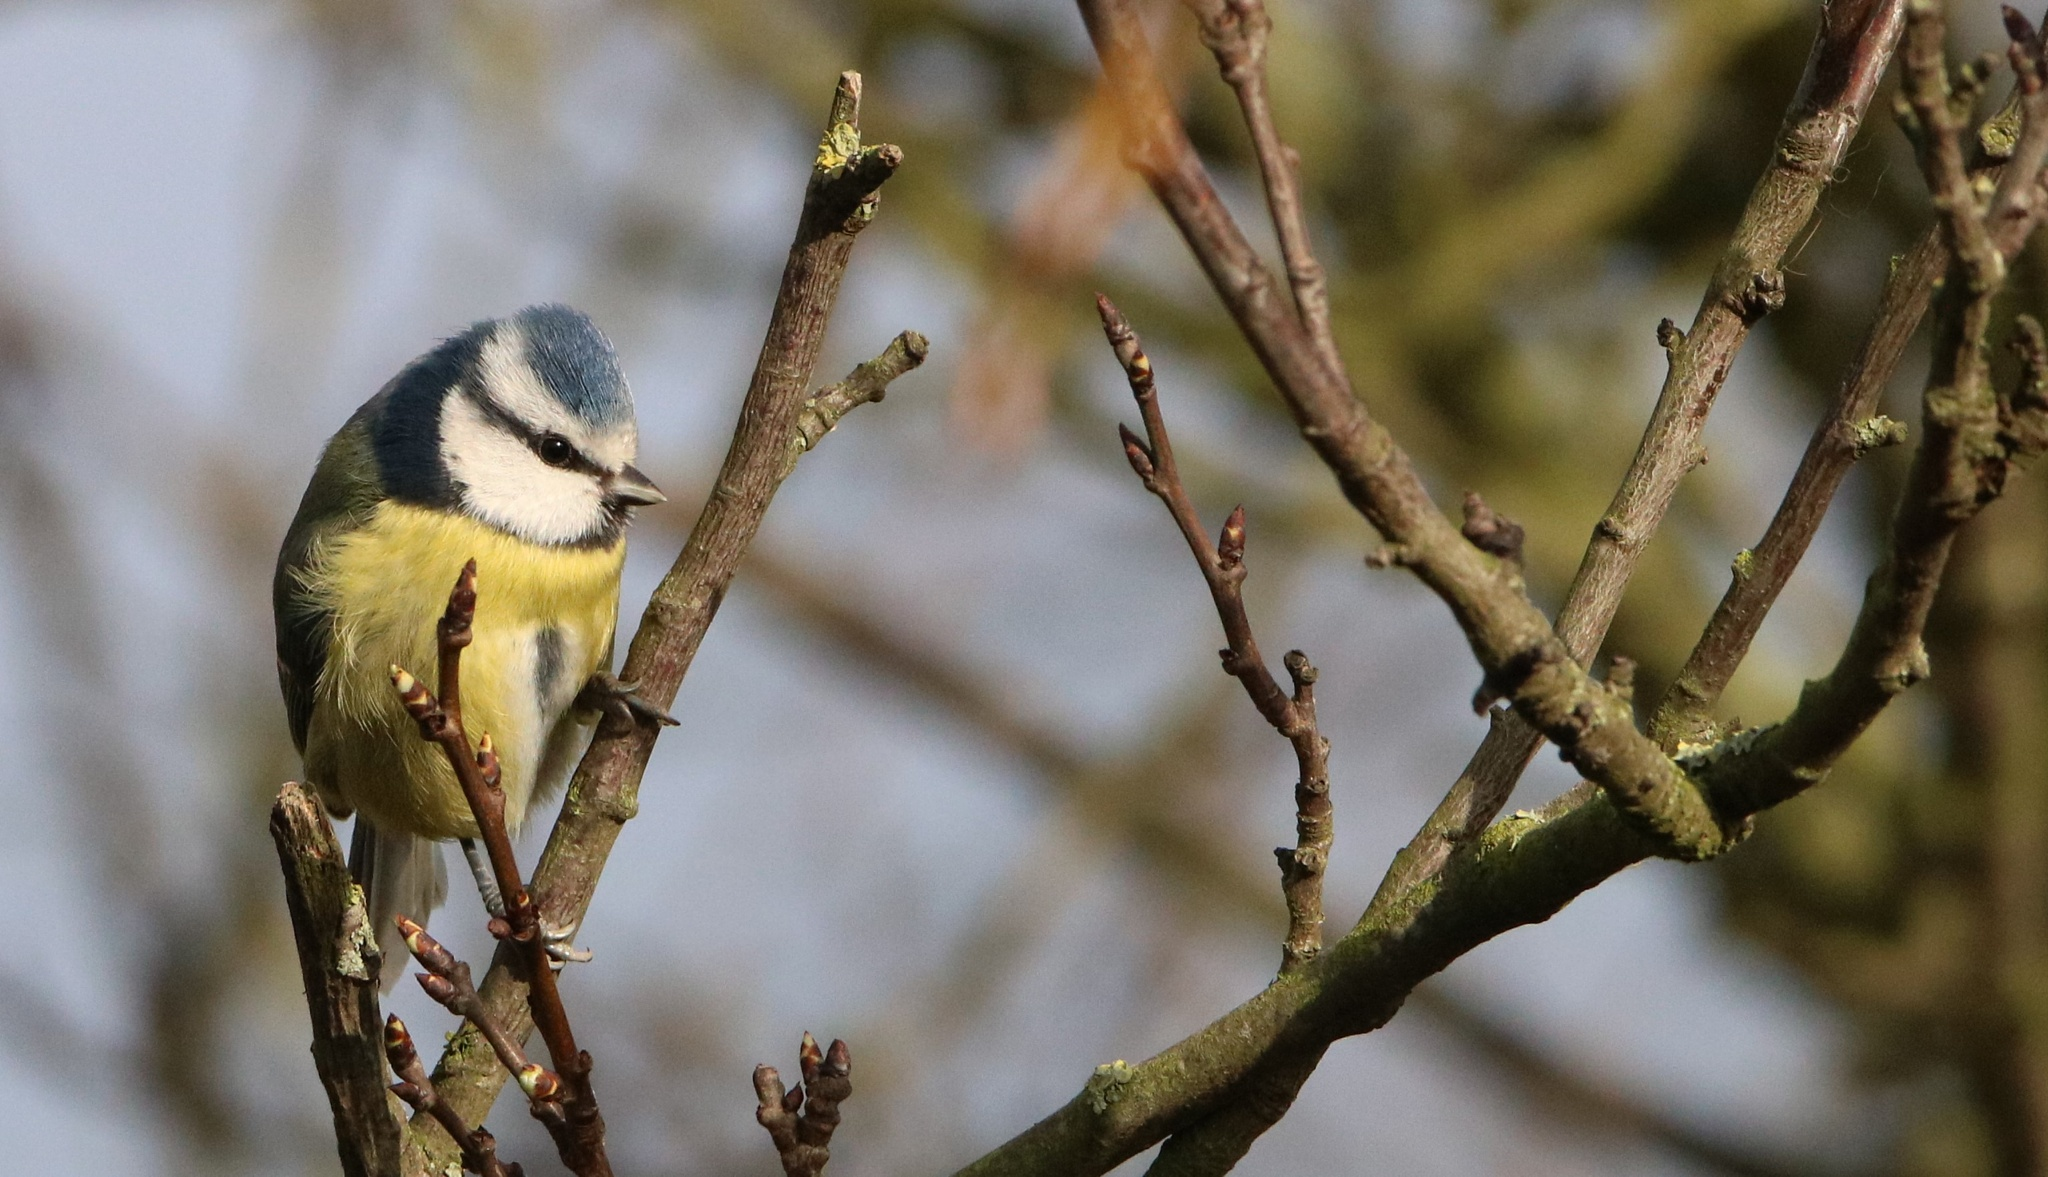 Blue Tit 2 by Dave Griffin Photography.